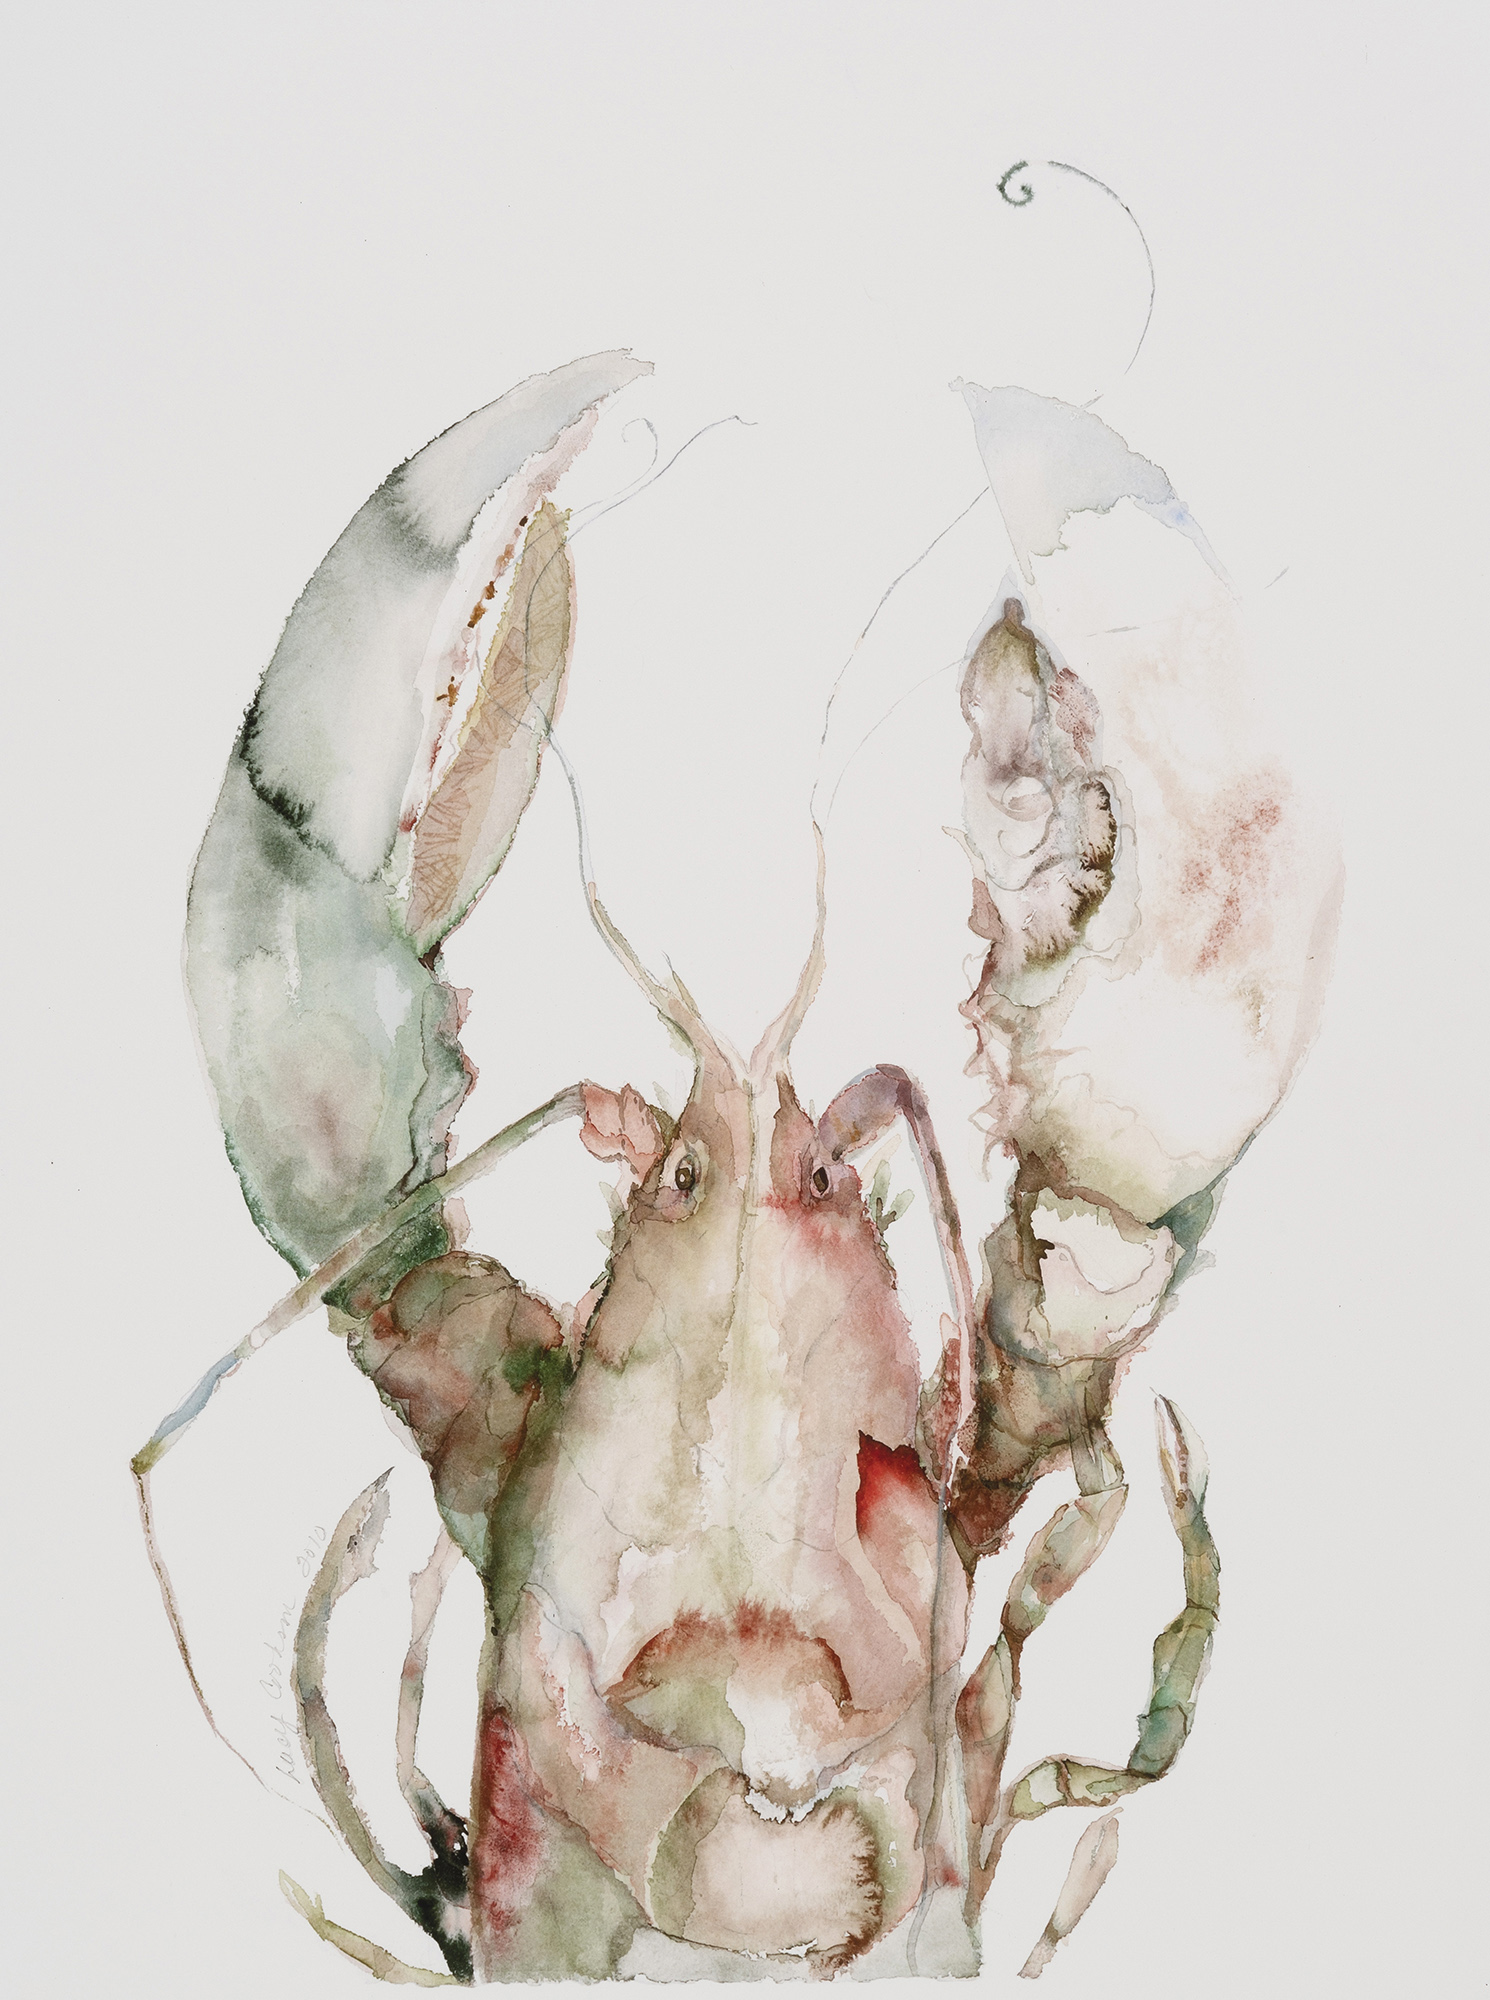 Lobster, 2010, Watercolor on paper, 30 x 26 in.